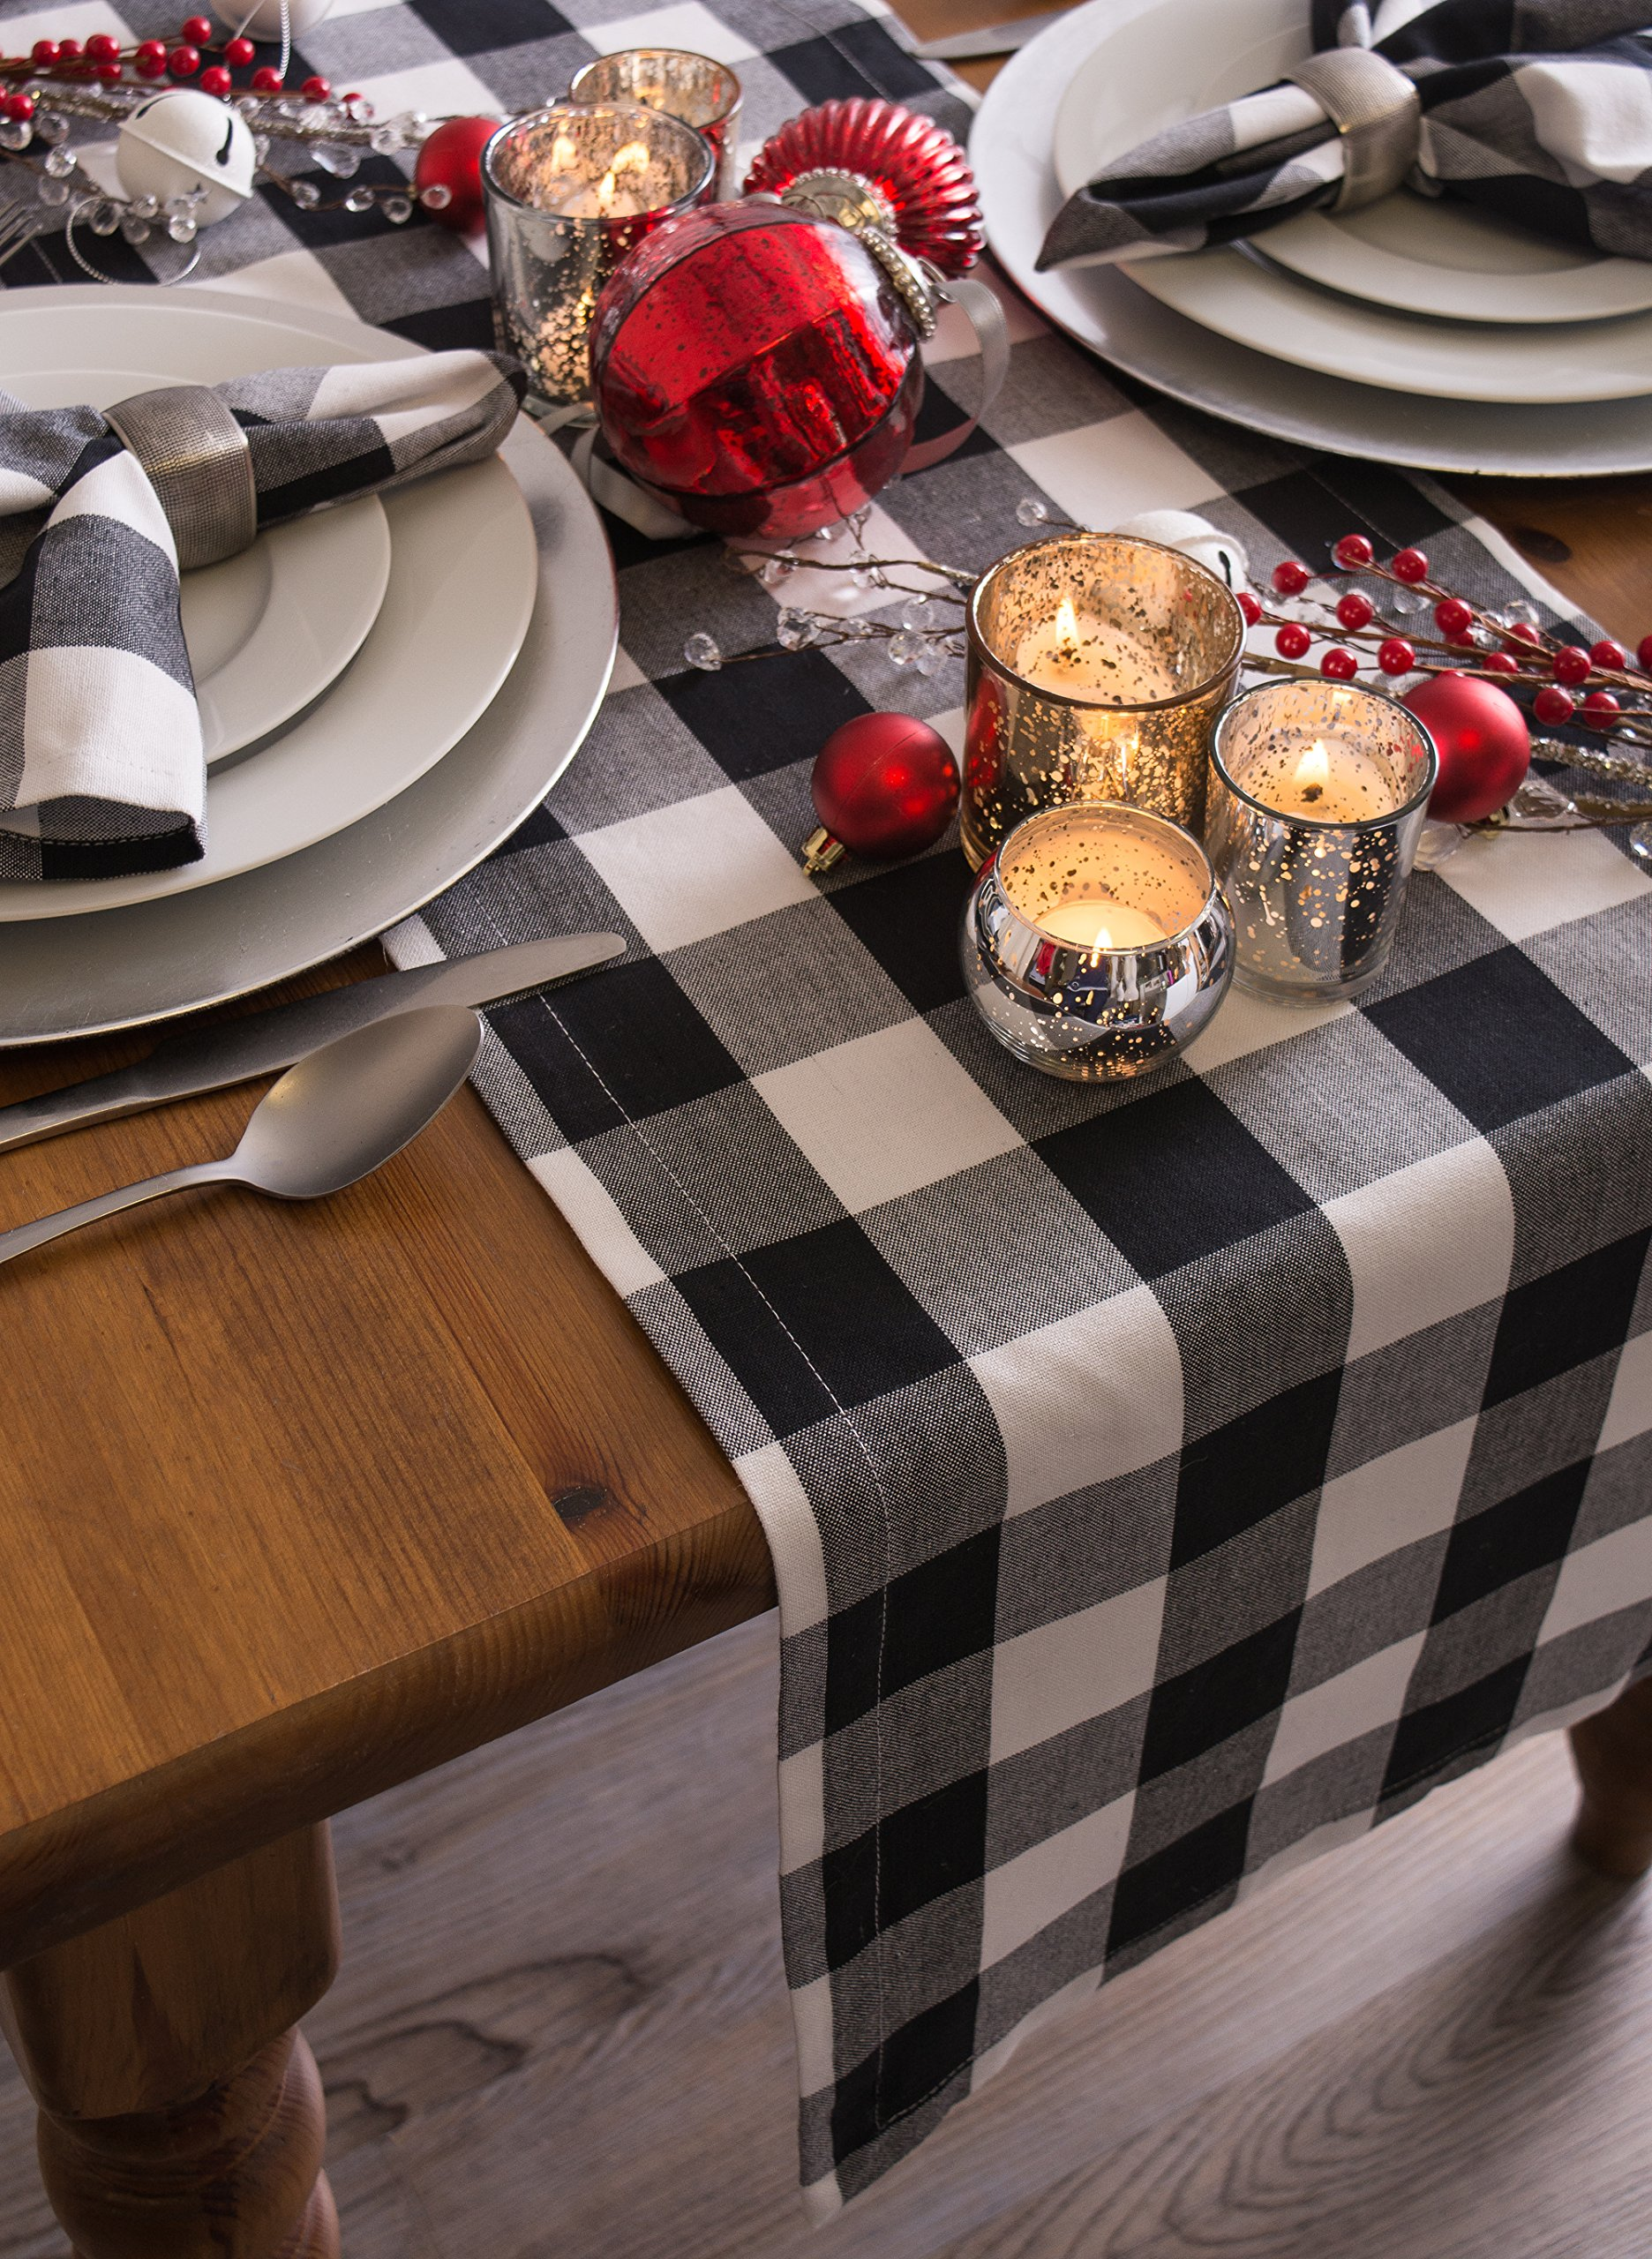 DII Cotton Buffalo Check Table Runner for Family Dinners or Gatherings, Indoor or Outdoor Parties, & Everyday Use (14x108'',  Seats 8-10 People), Black & White by DII (Image #7)